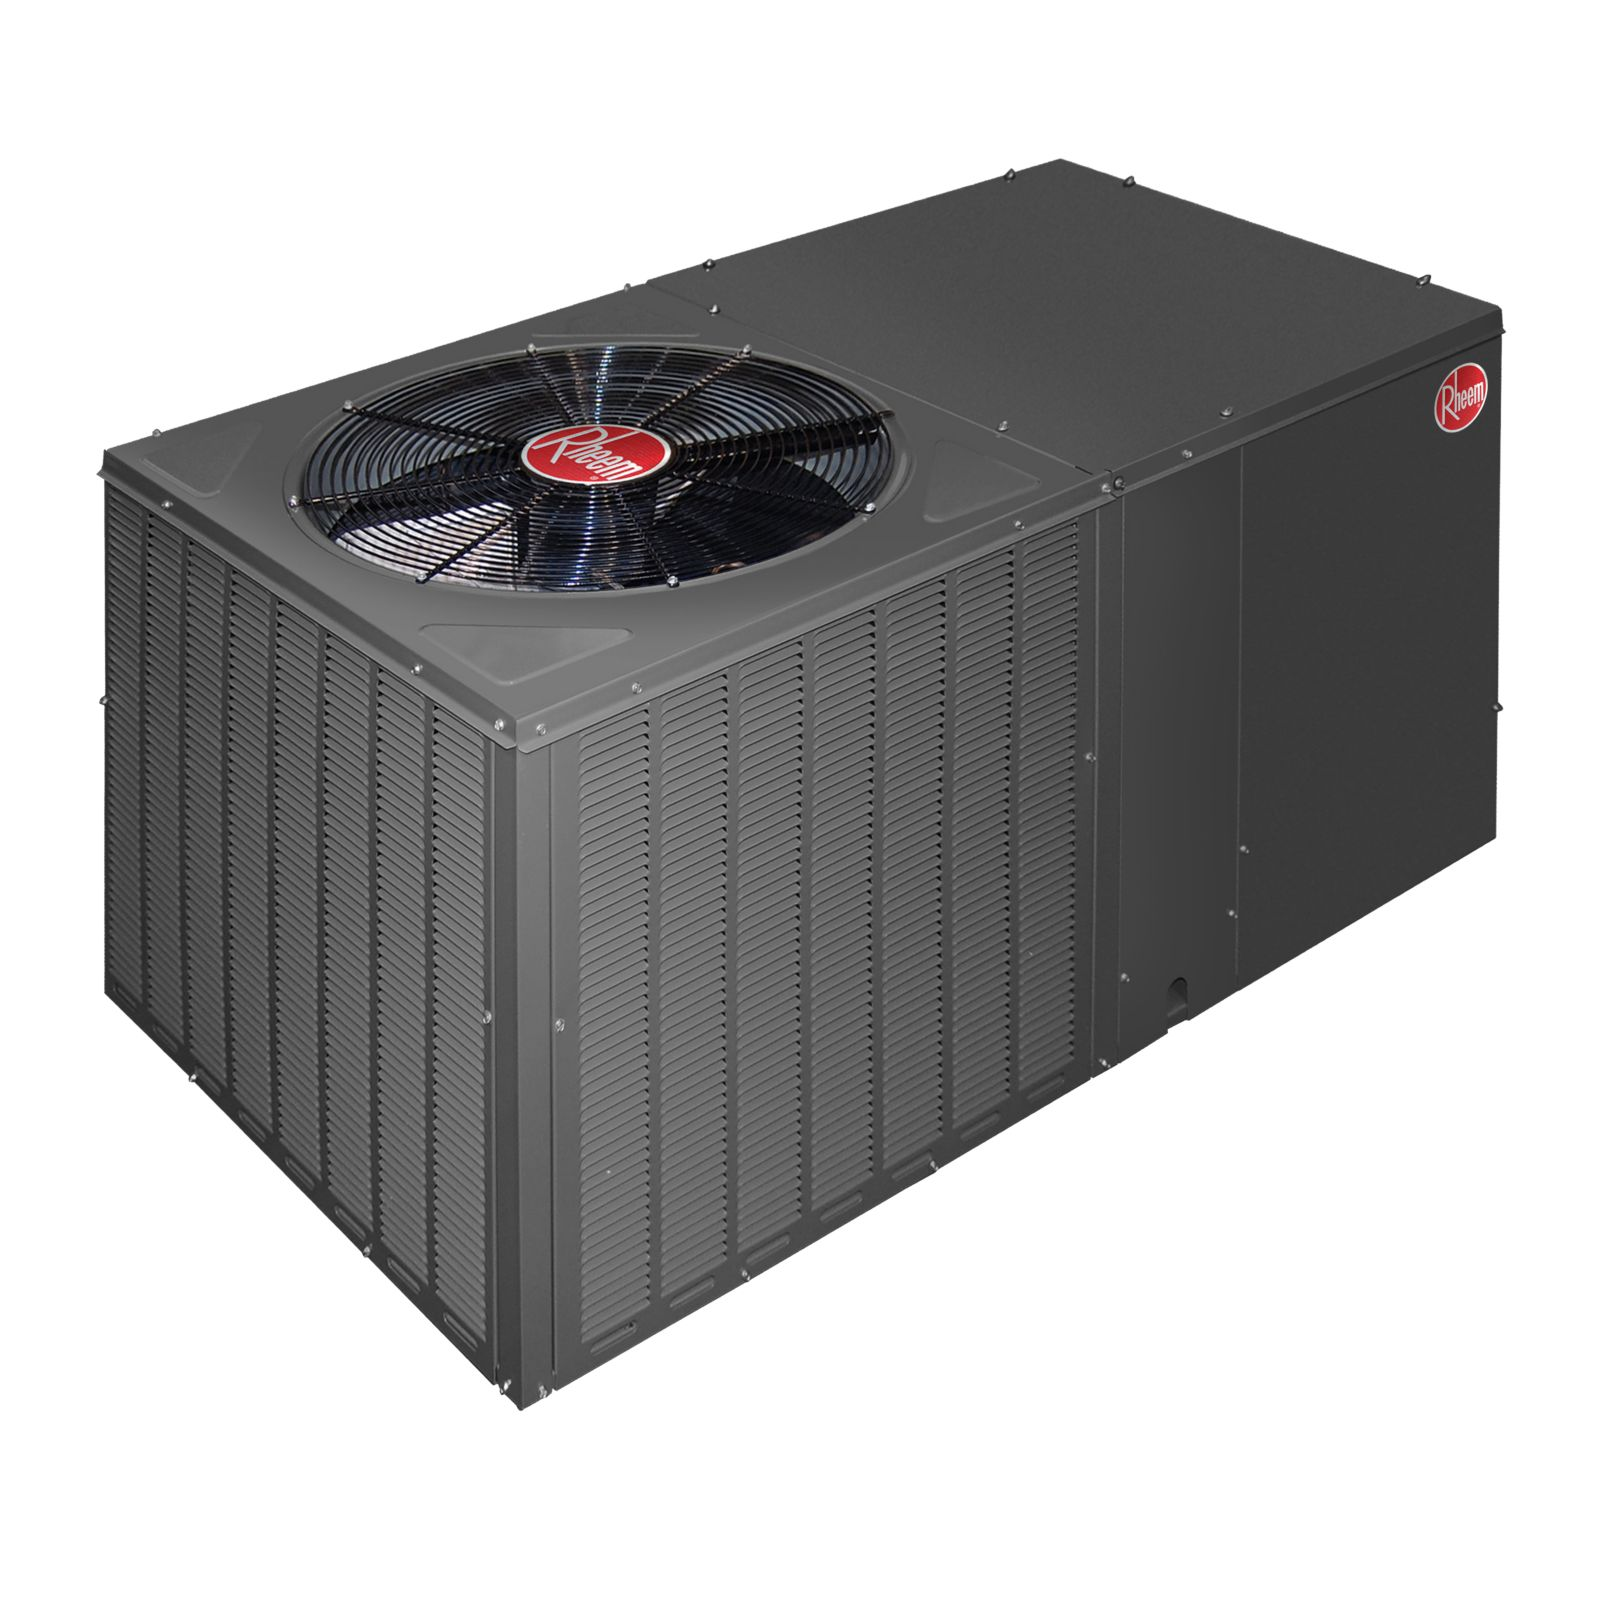 Rheem RQPM-A060JK000 - Classic 5 Ton, 14 SEER, R410A, Packaged Heat Pump With Horizontal Discharge, 208-230 V, 1 Ph, 60 Hz